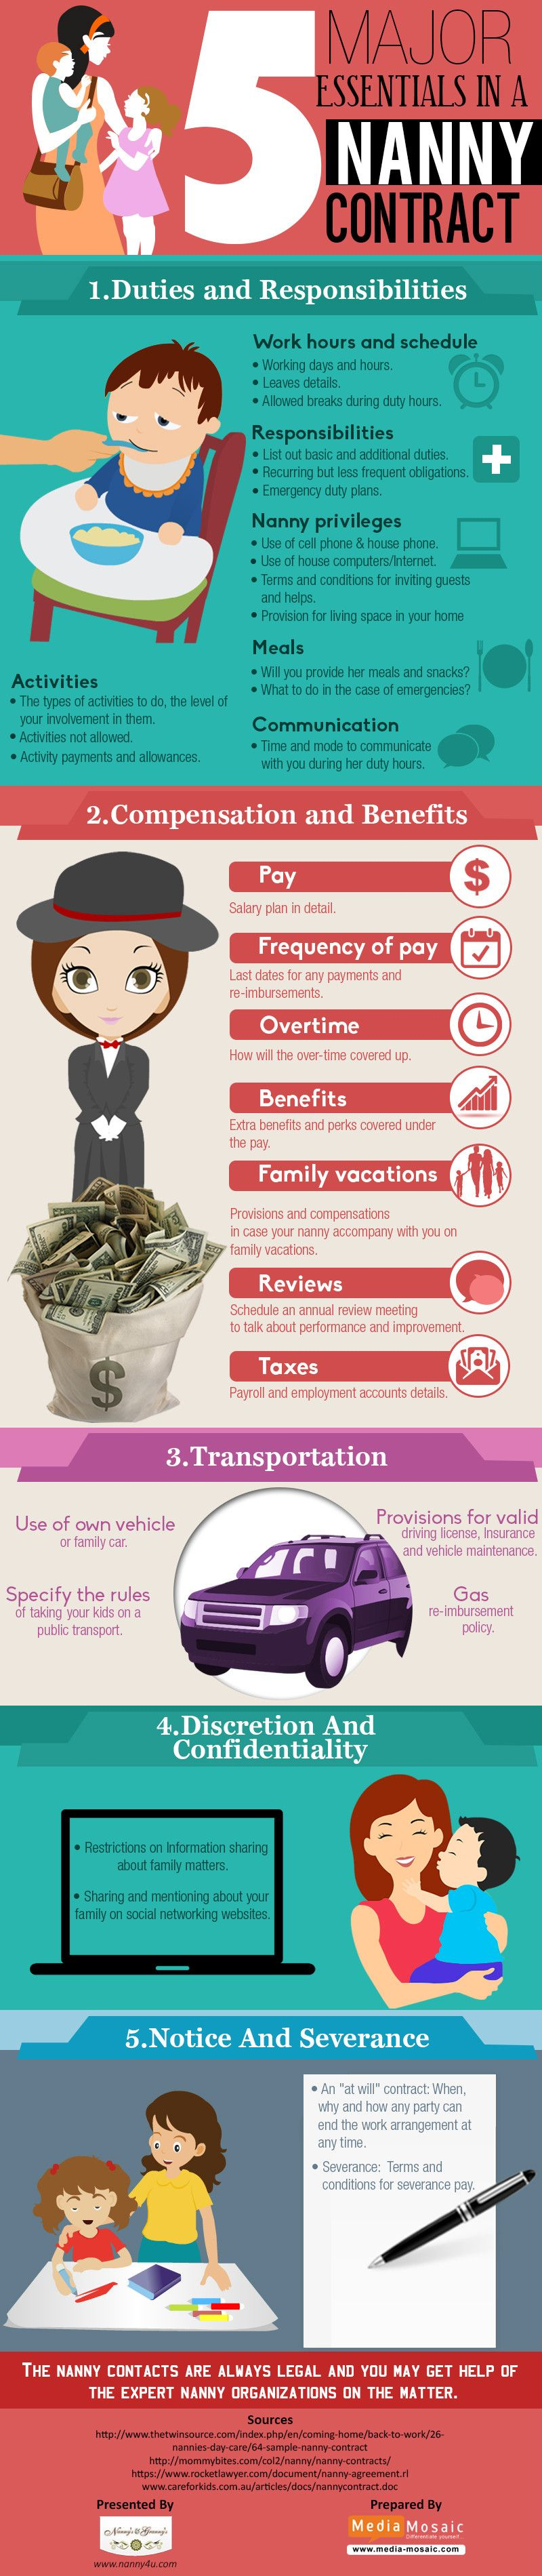 5 major essentials in a nanny contract infographic